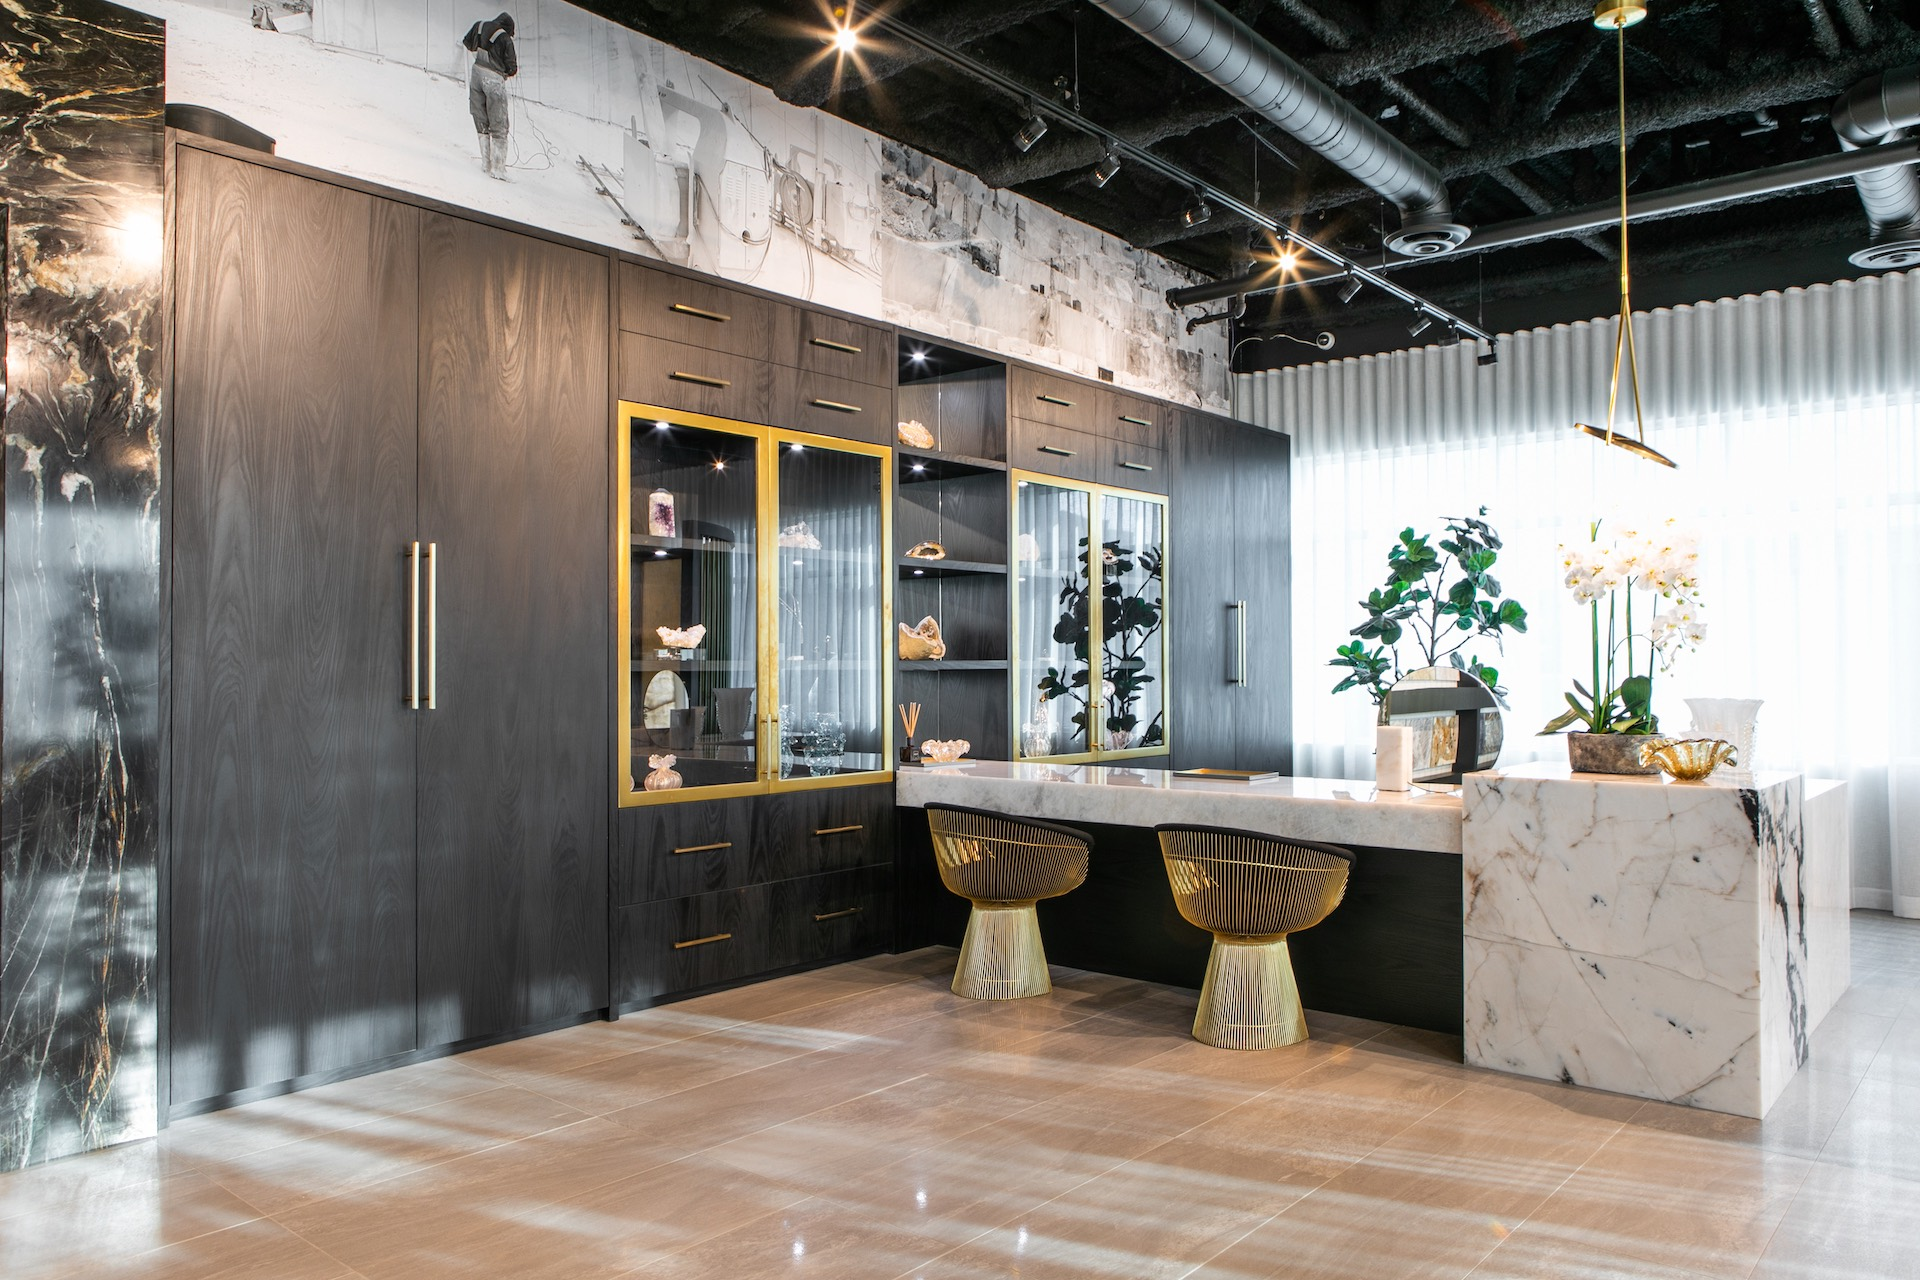 Grey cabinets with white marble bar and stools